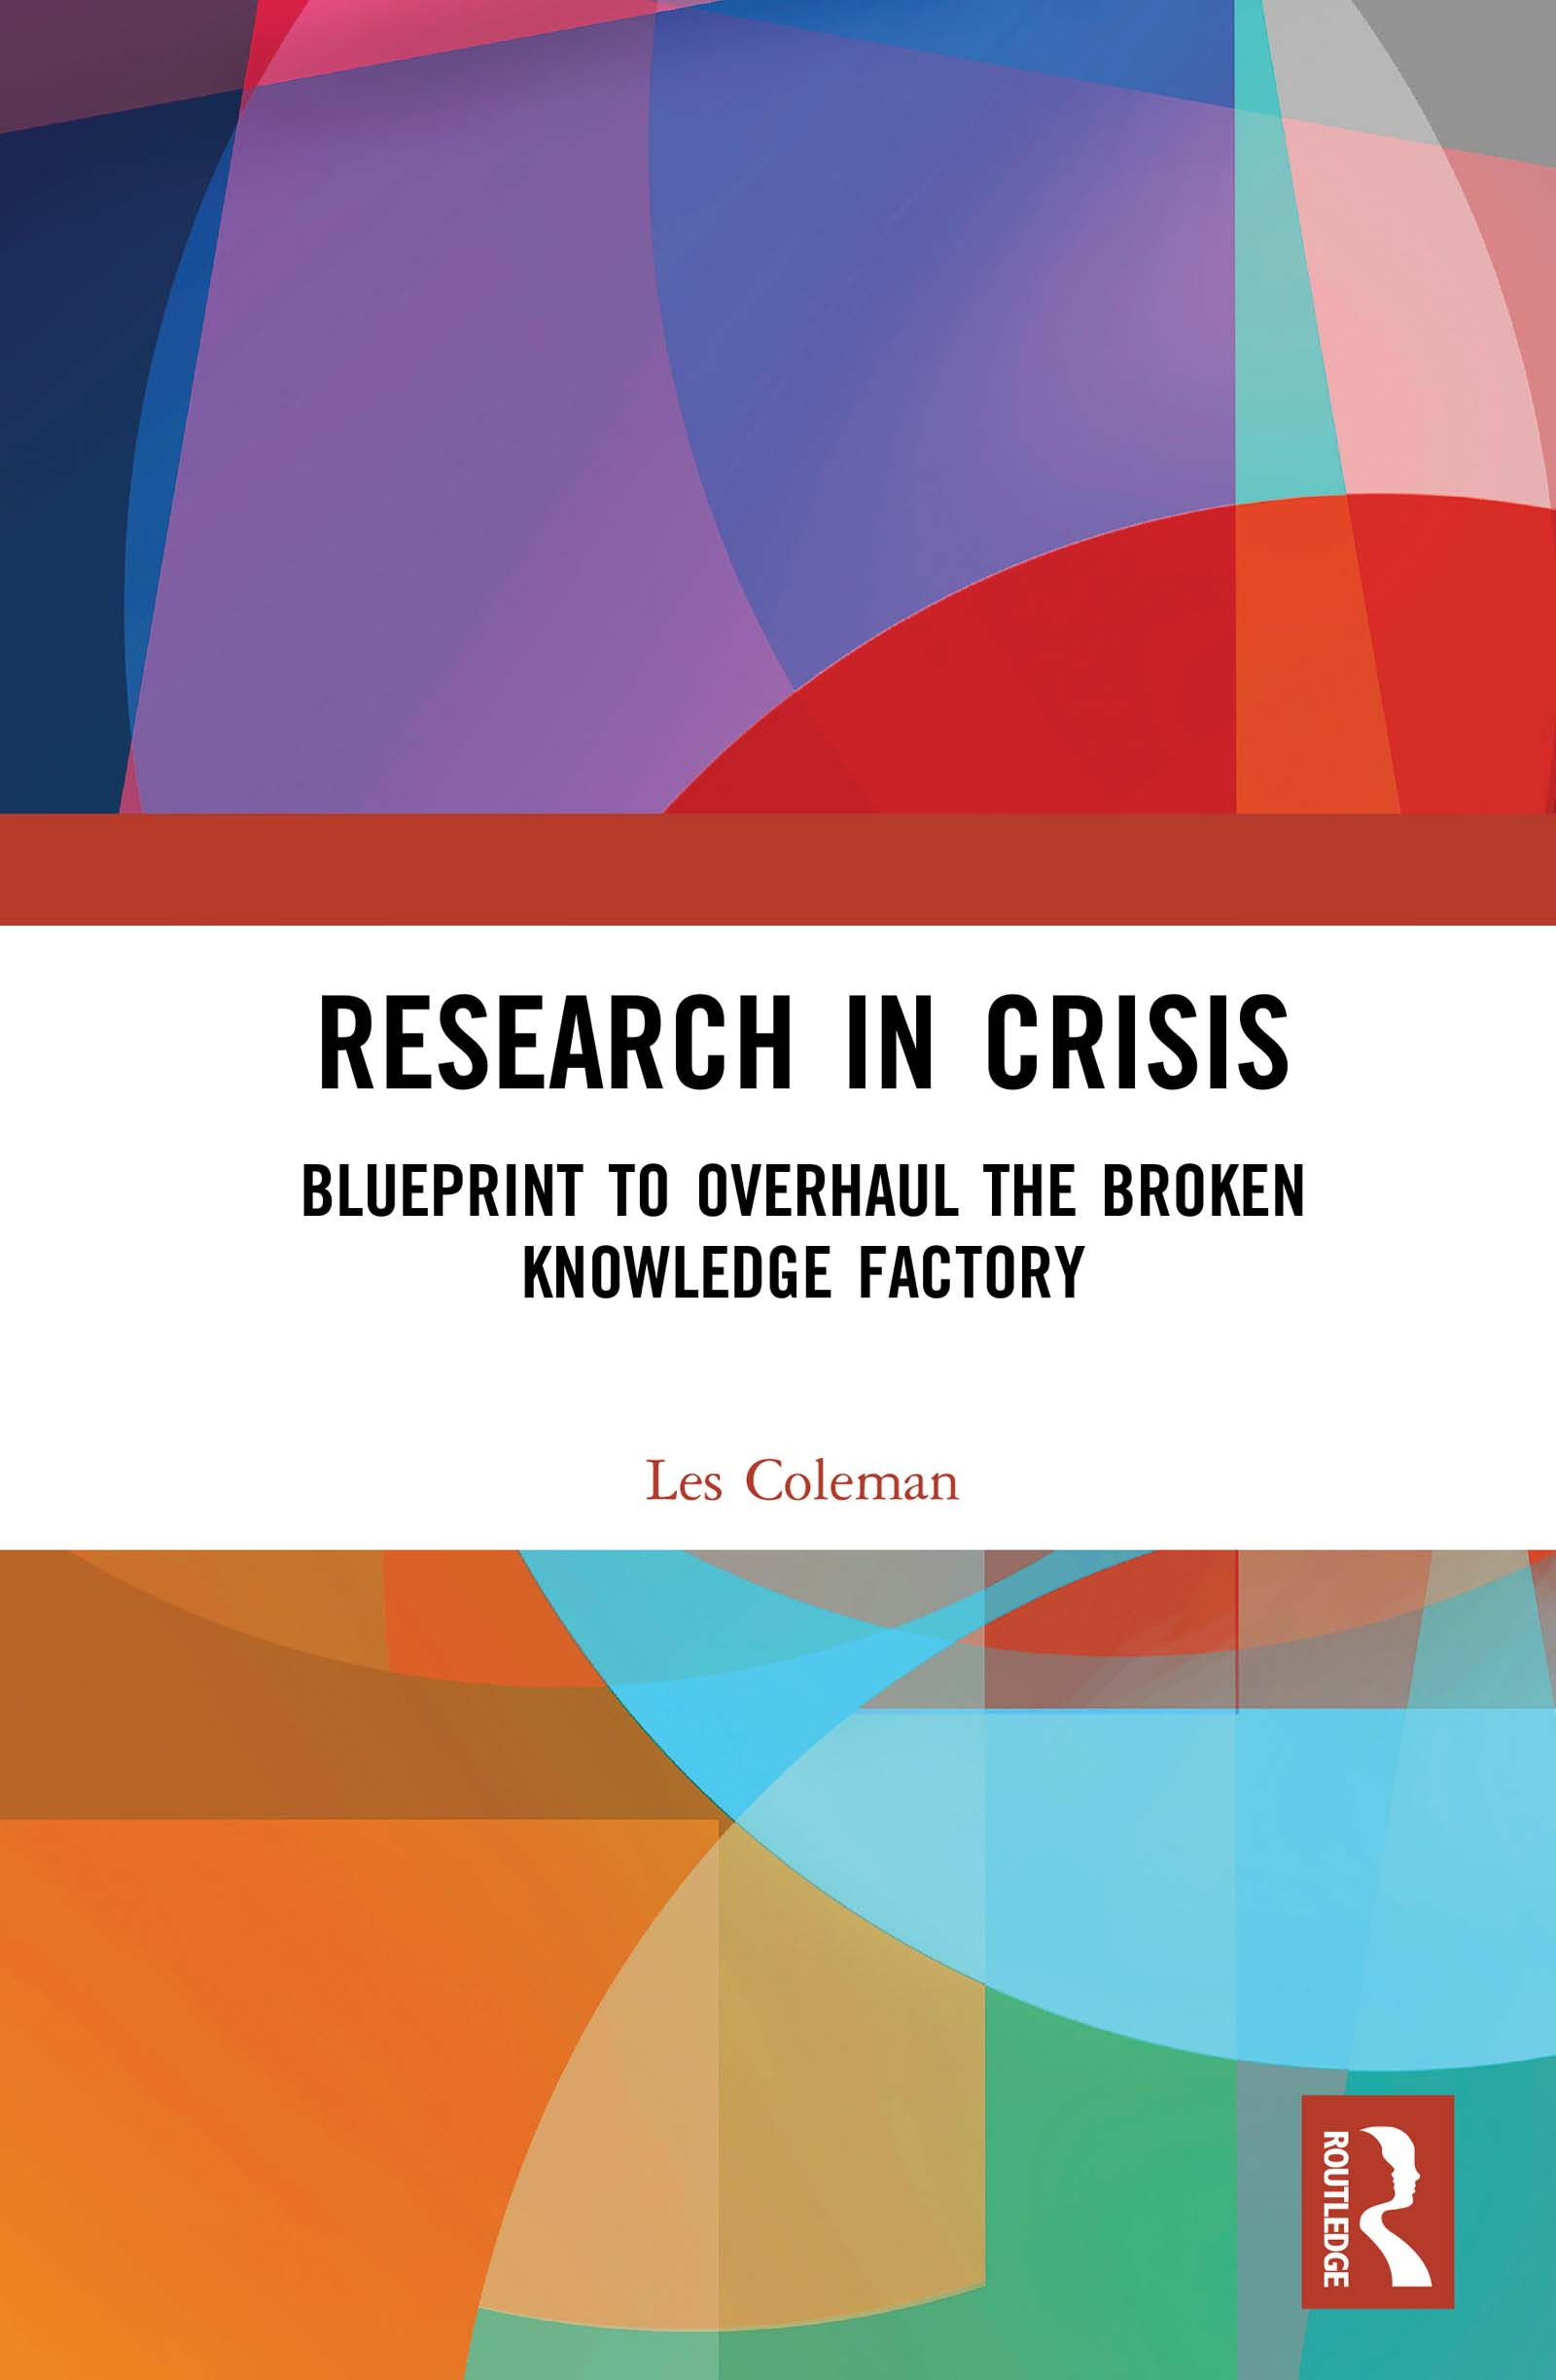 Research in Crisis